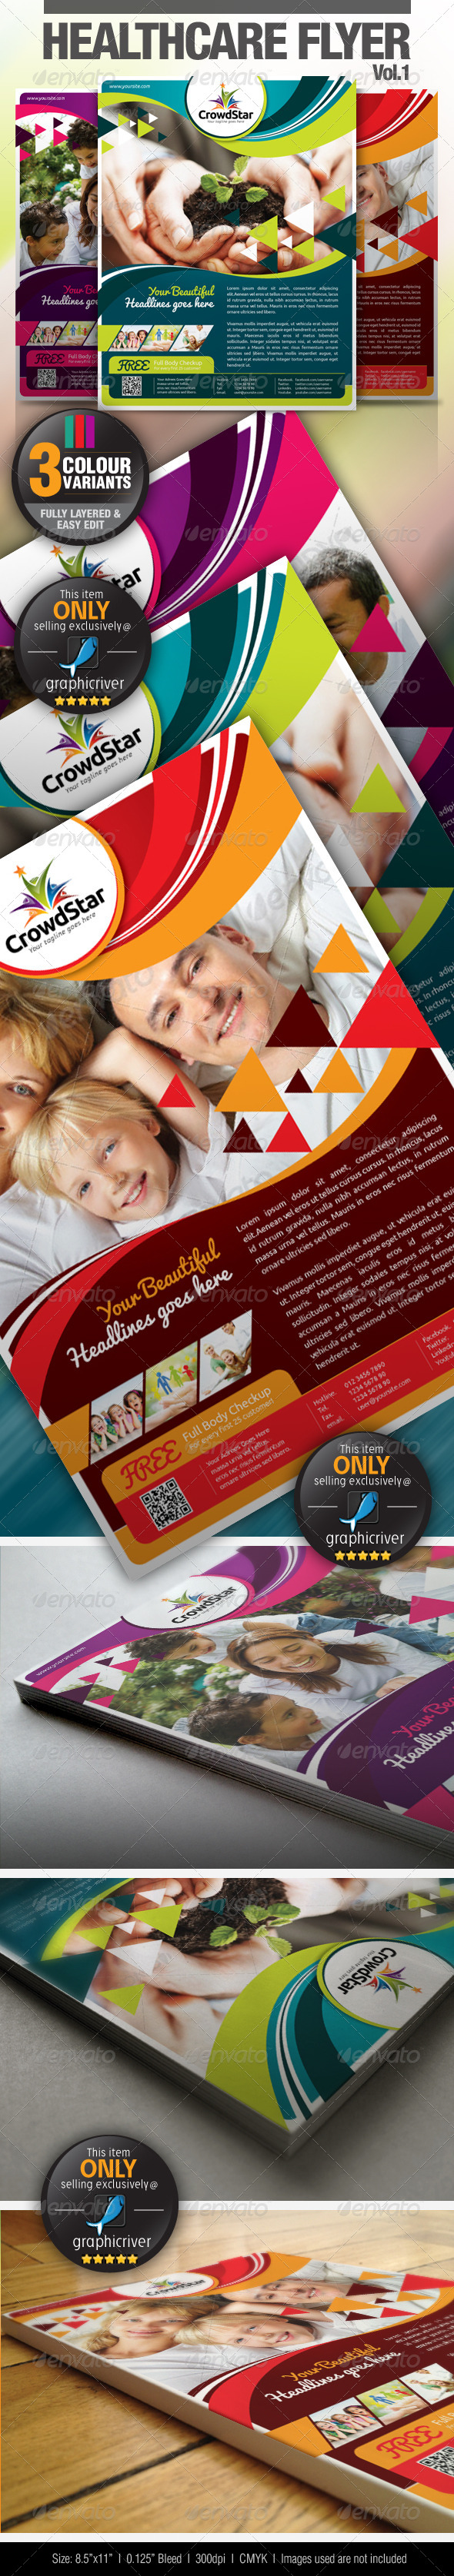 GraphicRiver Healthcare Flyer Vol.1 4669859